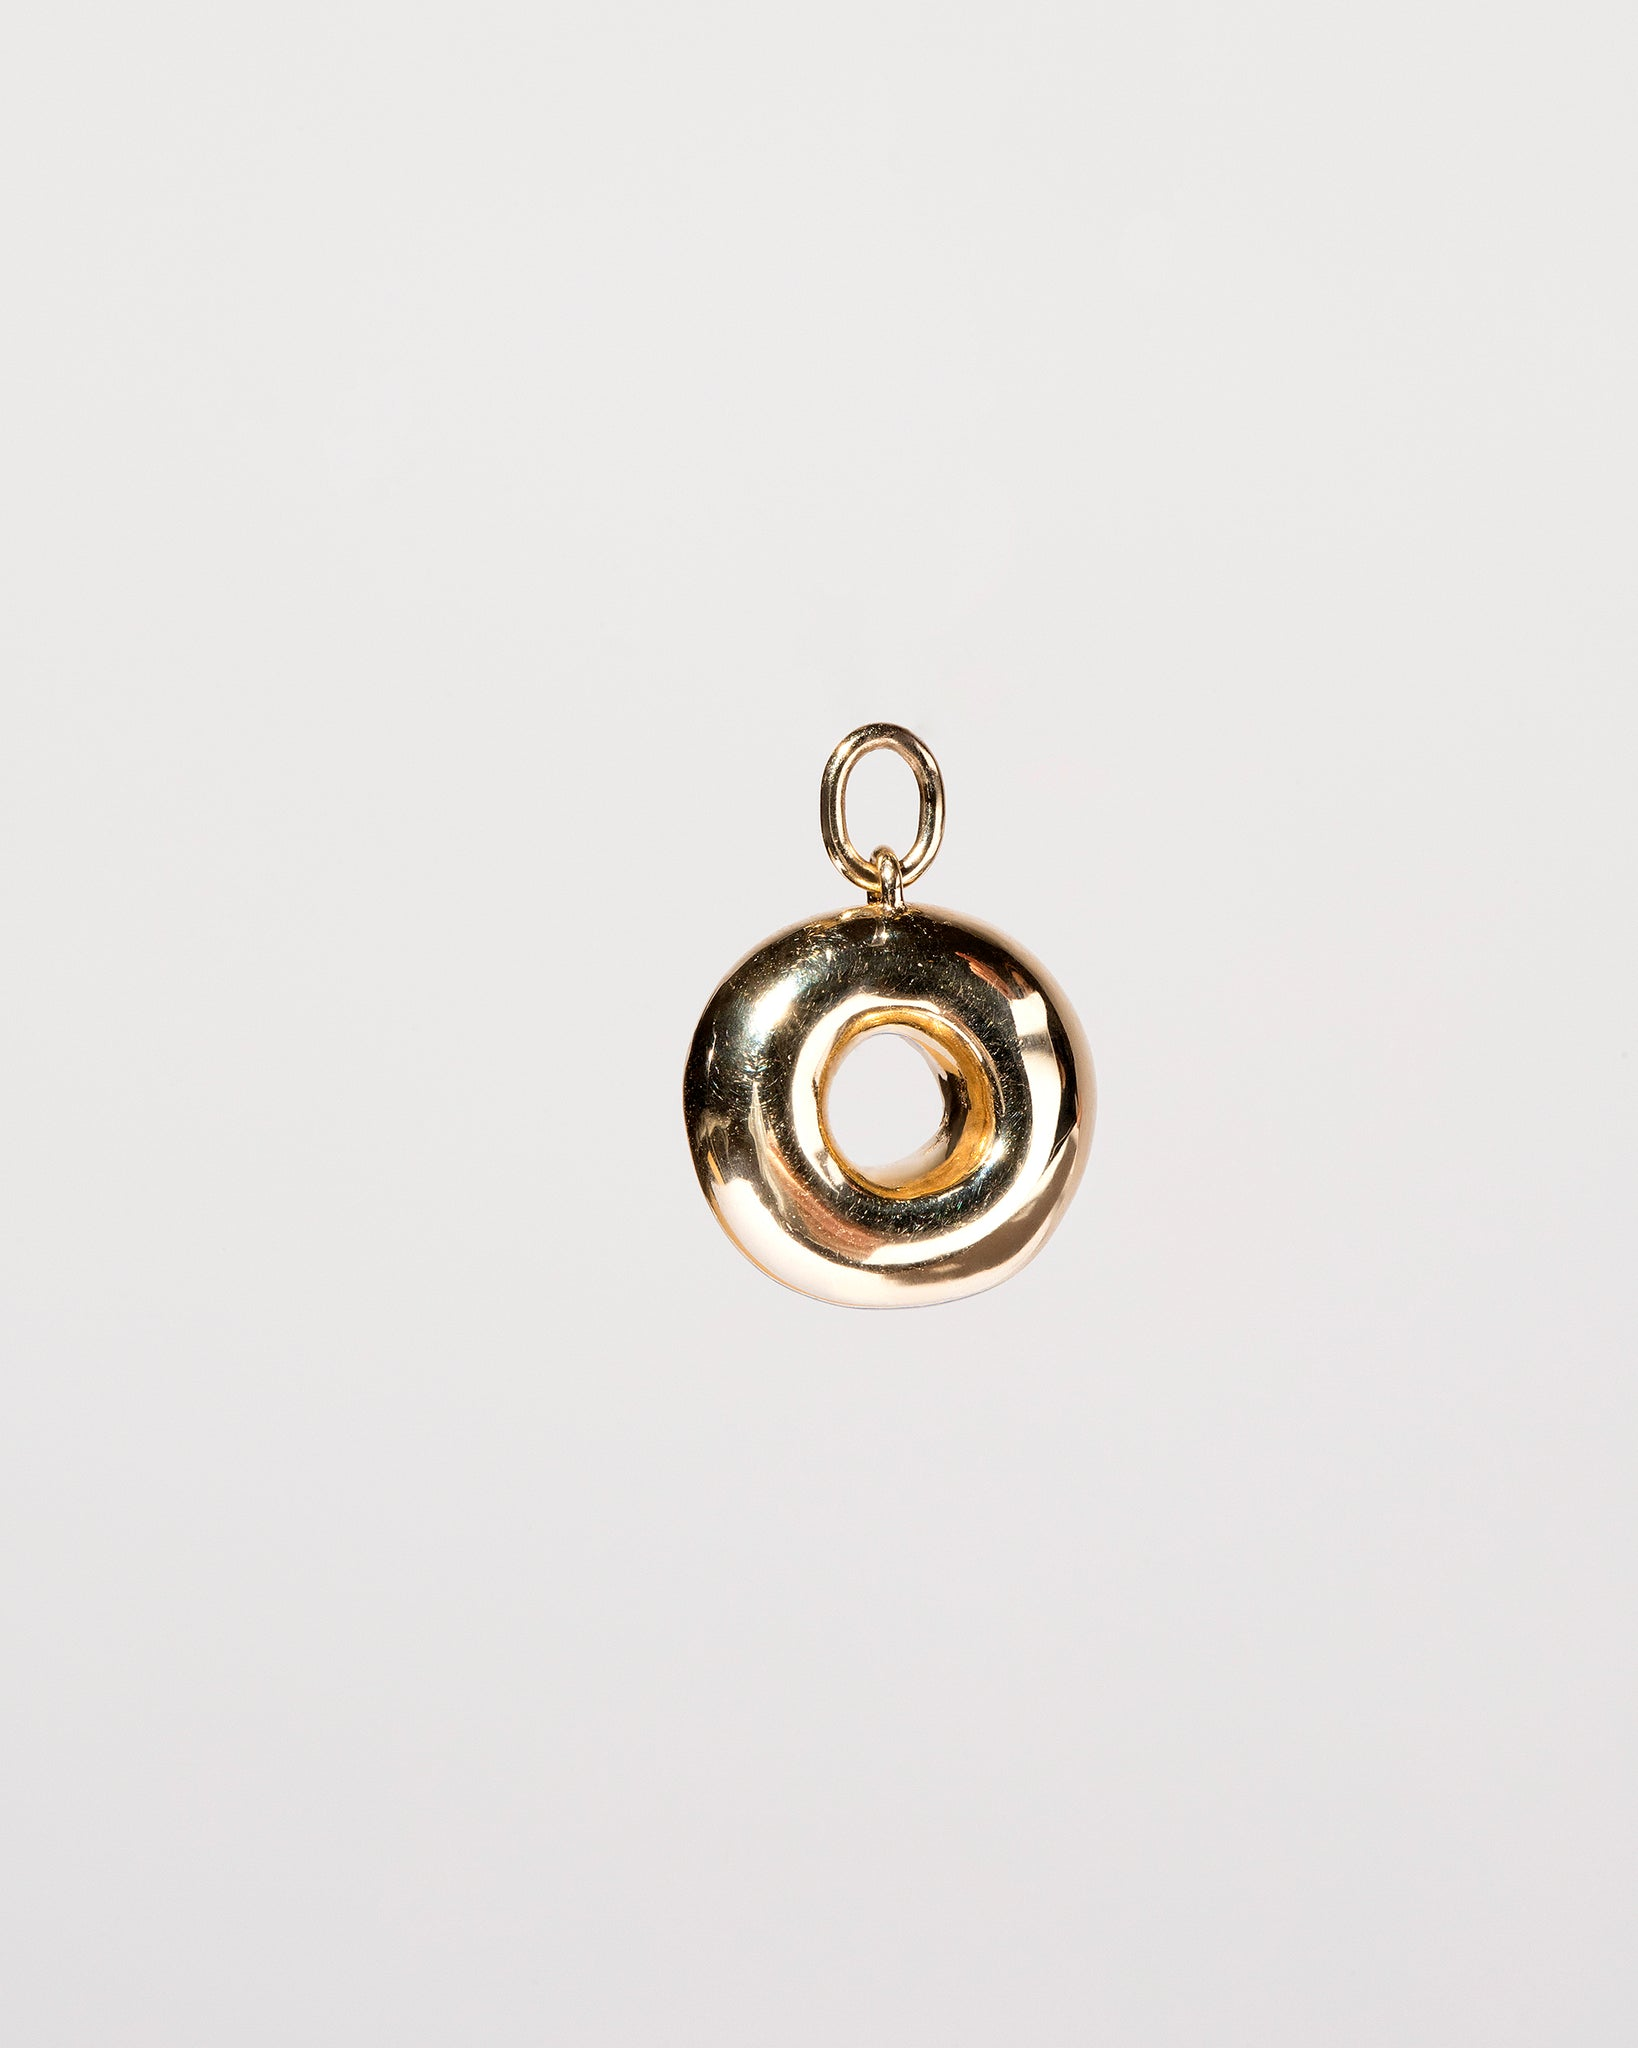 Plain Donut Charm - Final Sale on light color background.